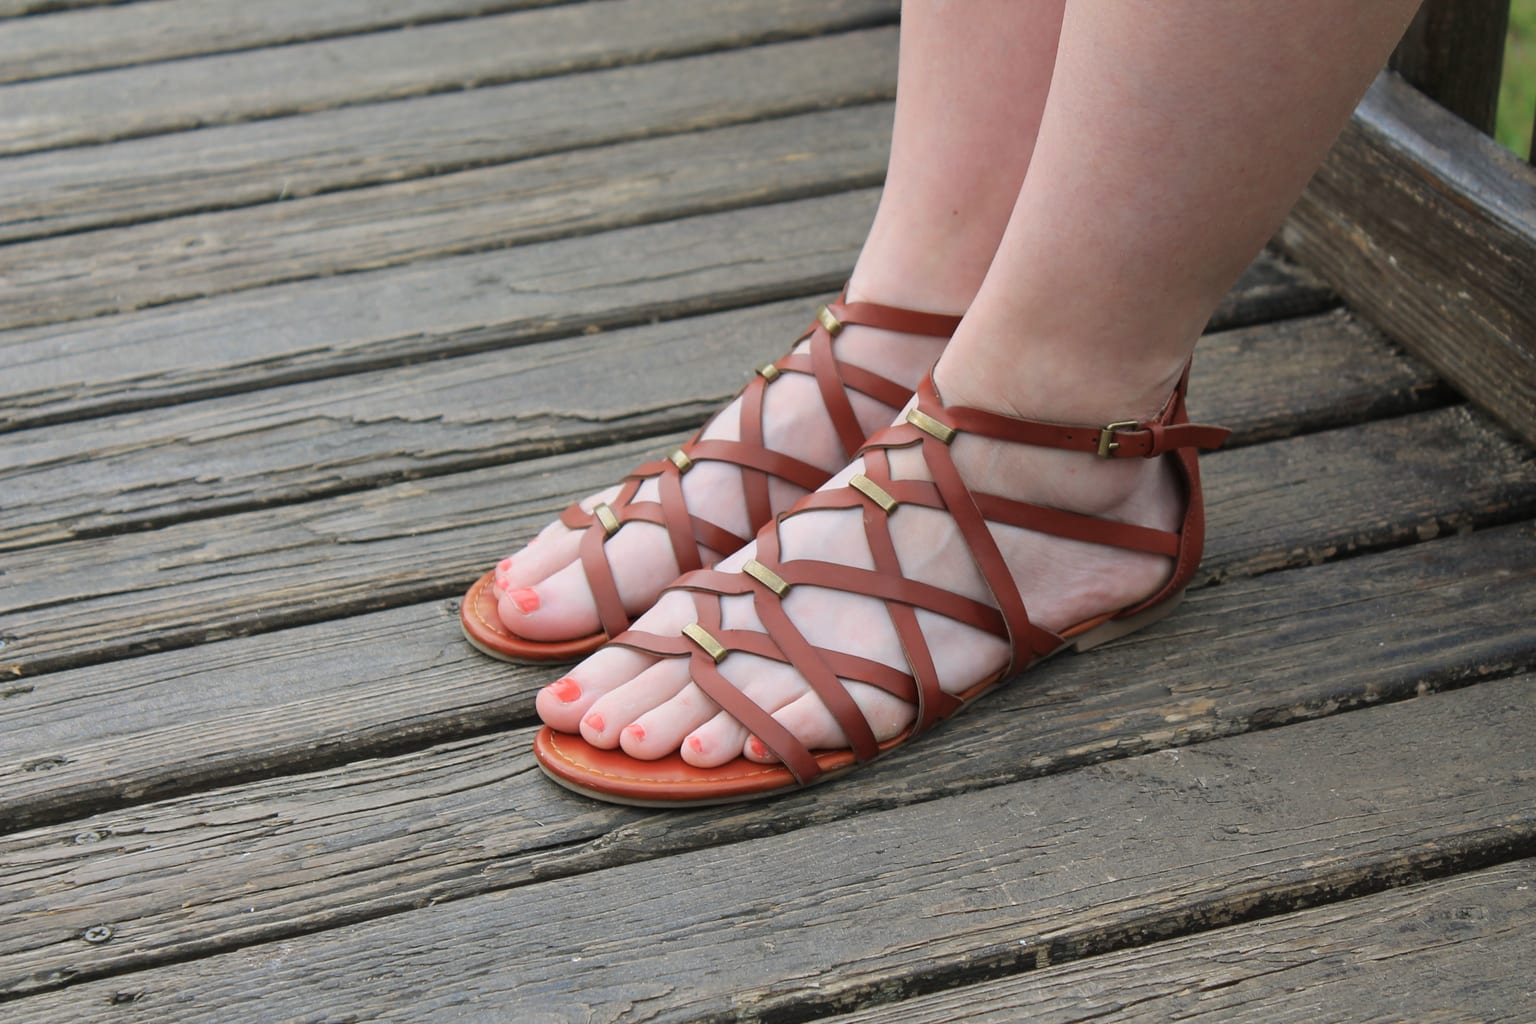 Rebecca wears flat brown sandals with gold details.